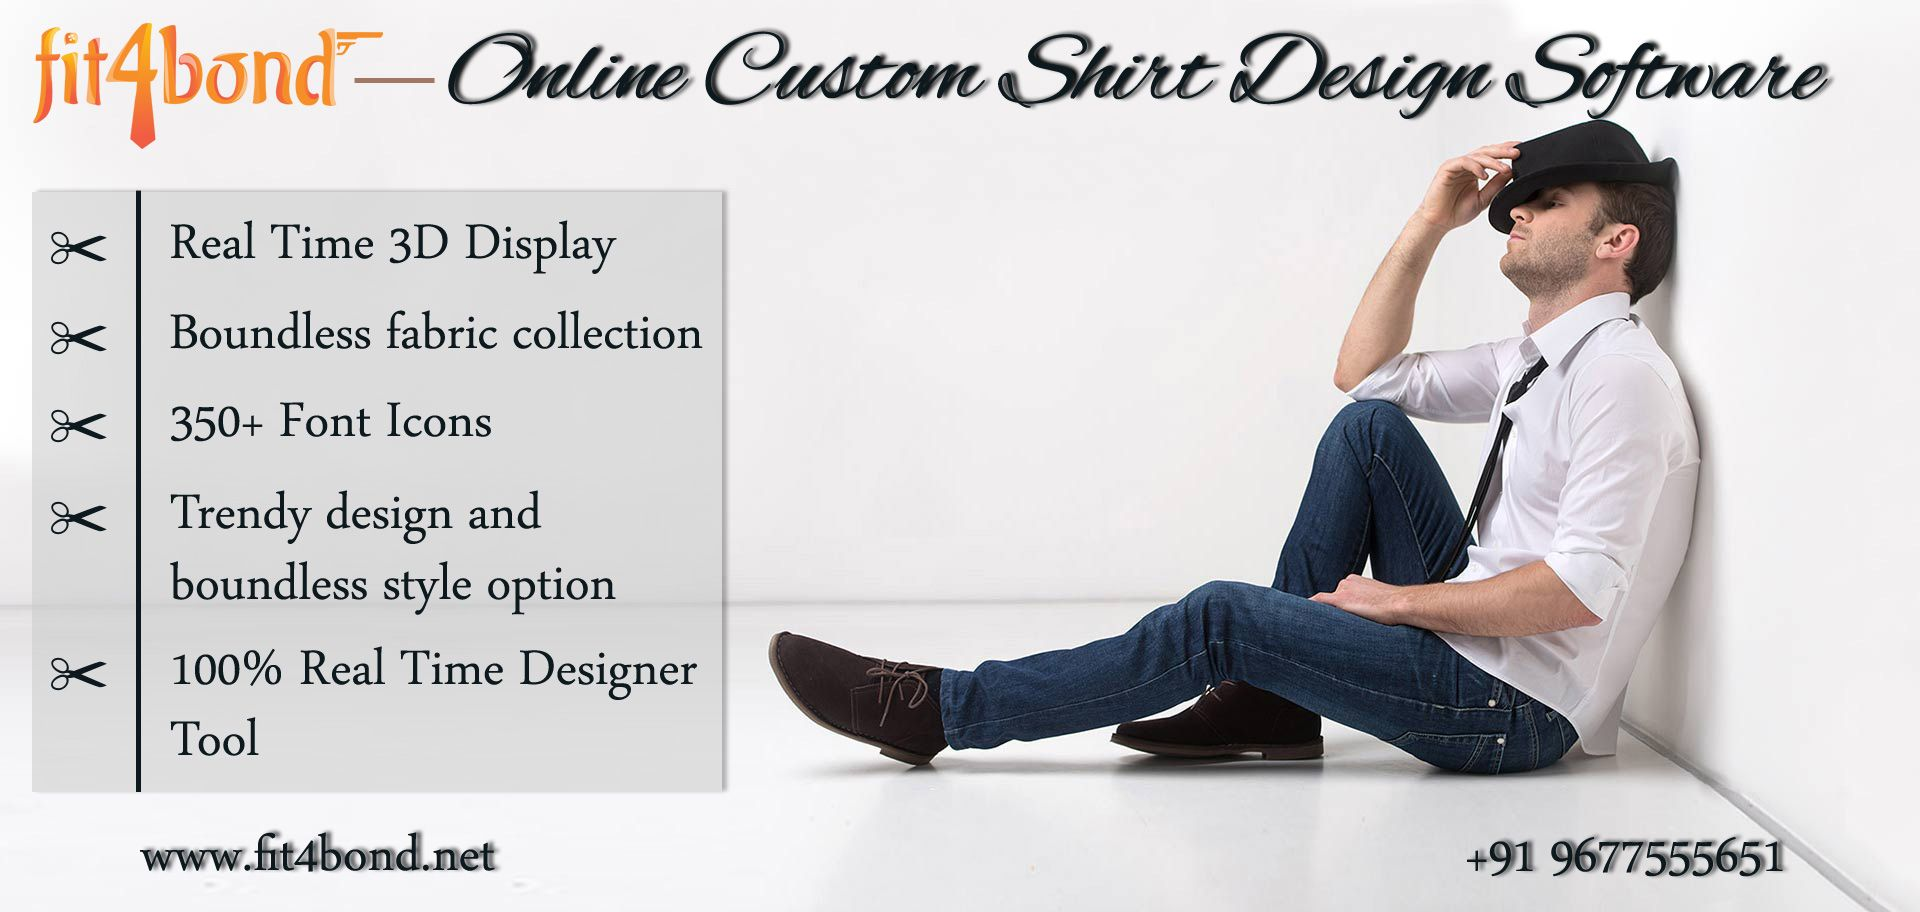 Shirt design website software